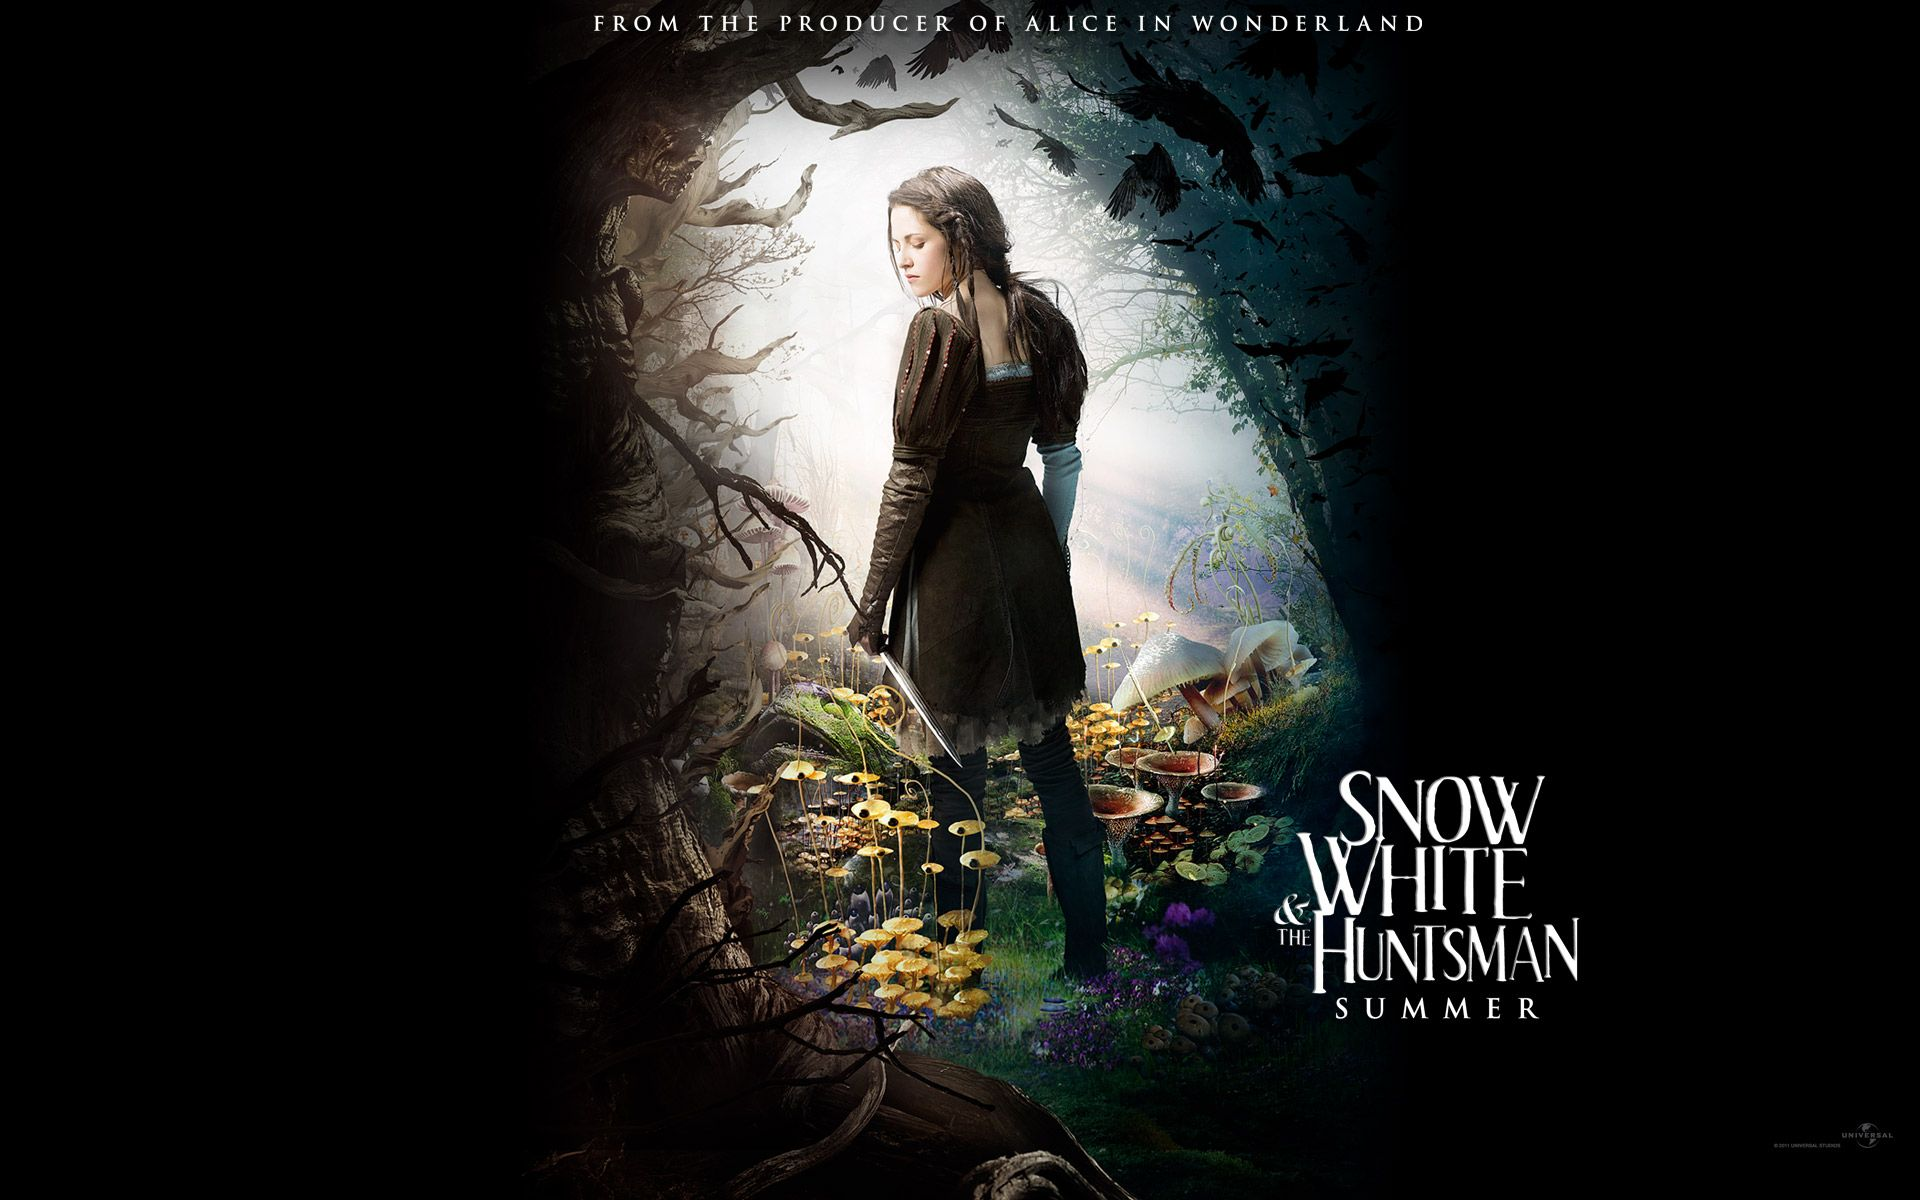 SNOW WHITE EXCLUSIVE: An Interview with Director Rupert Sanders